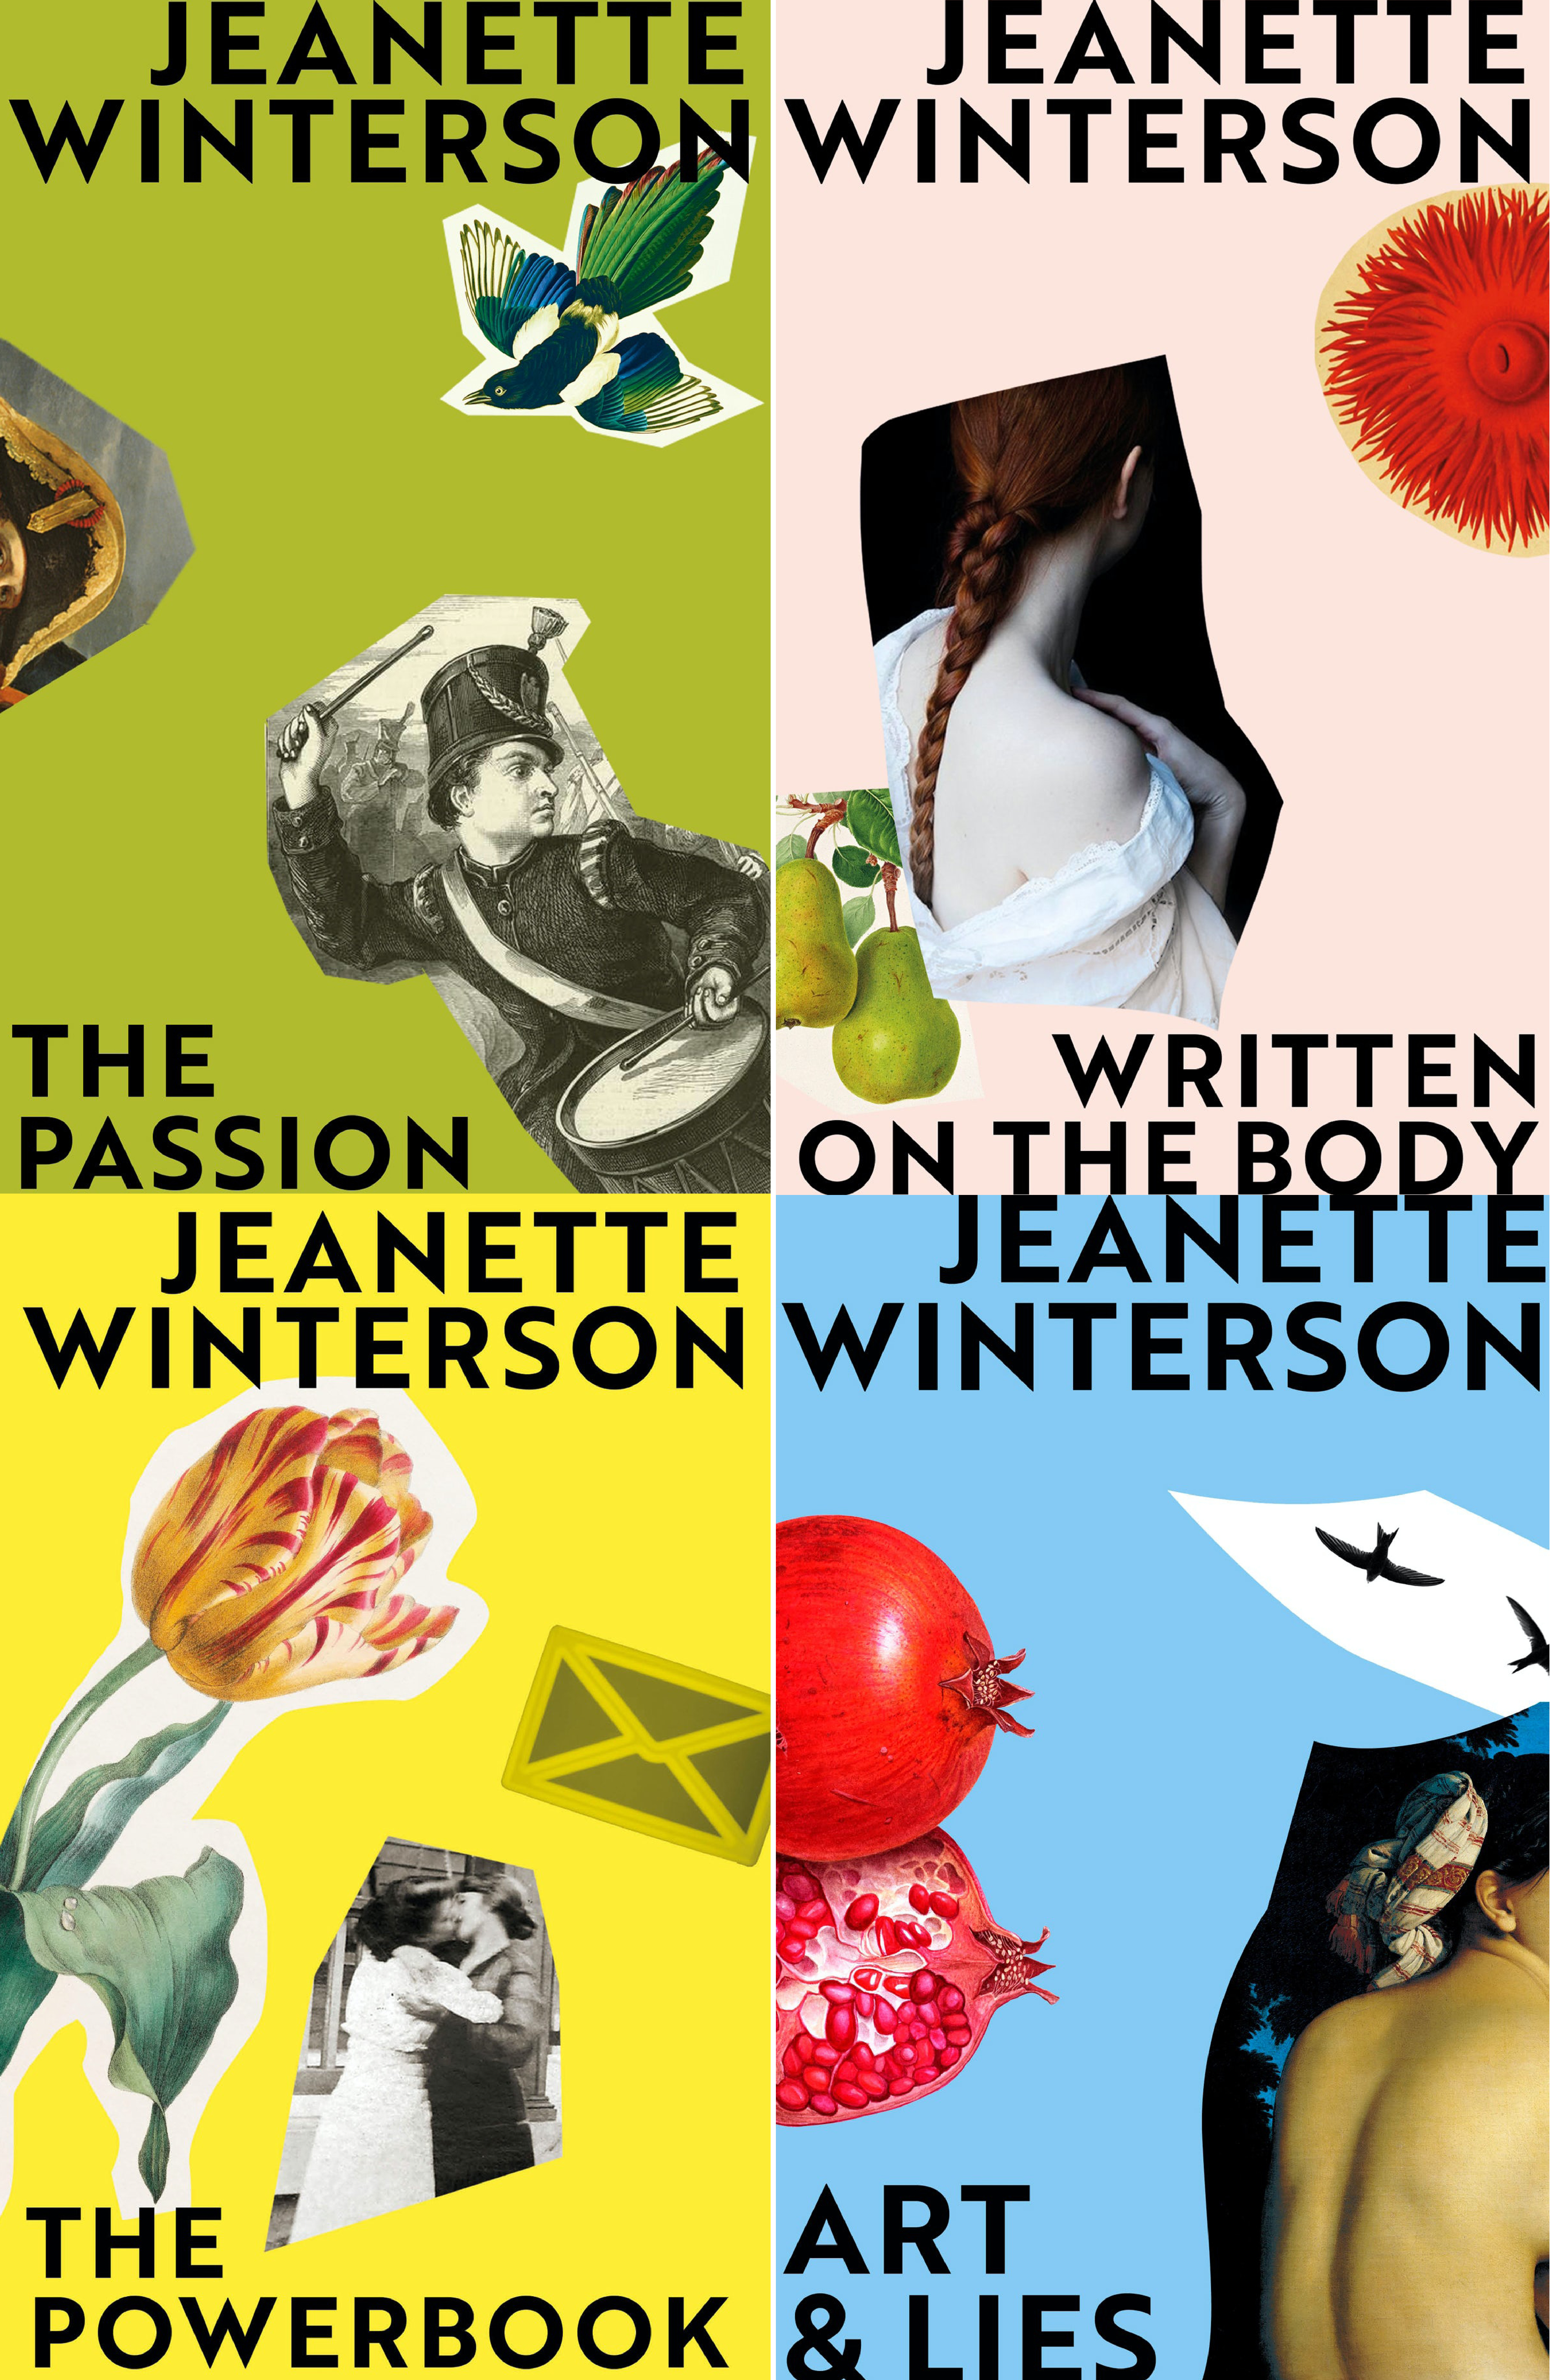 Protest or PR stunt? Jeanette Winterson burns her own books in anger over cover blurbs